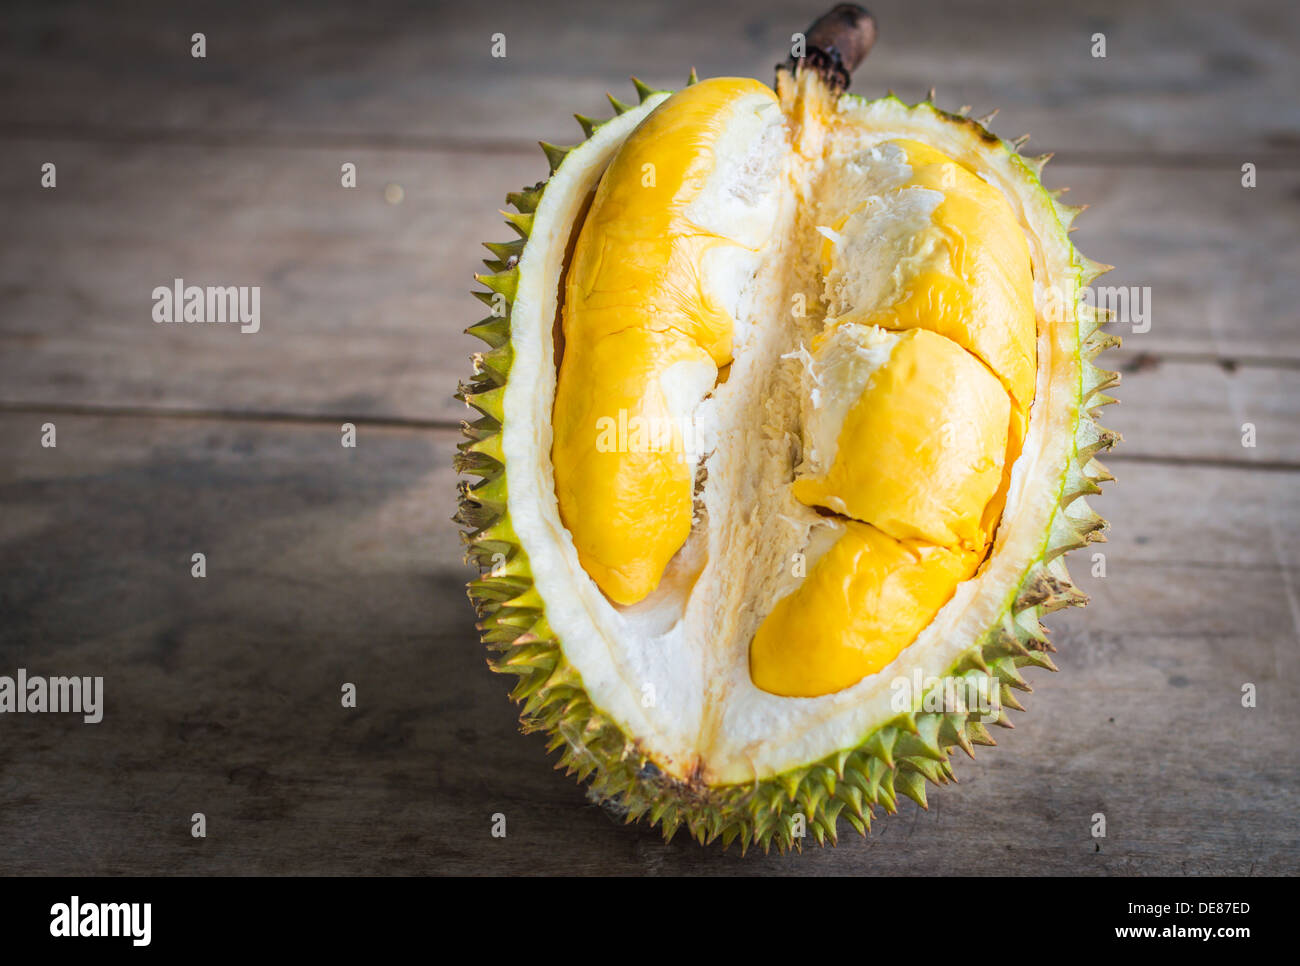 Close up of peeled Durian.By placing the components on the wood board. Stock Photo